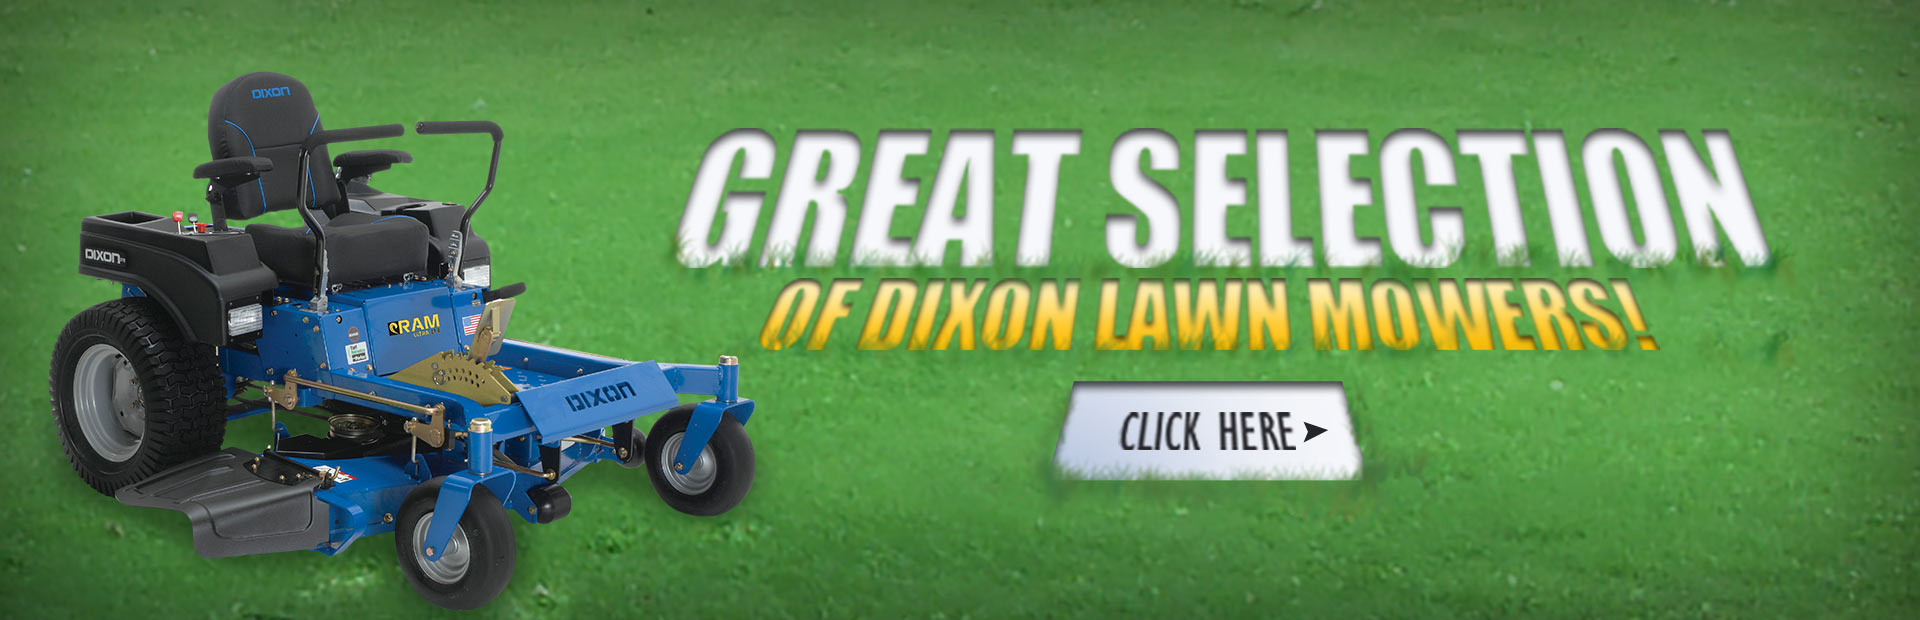 We have a great selection of Dixon lawn mowers. Click here to view them.